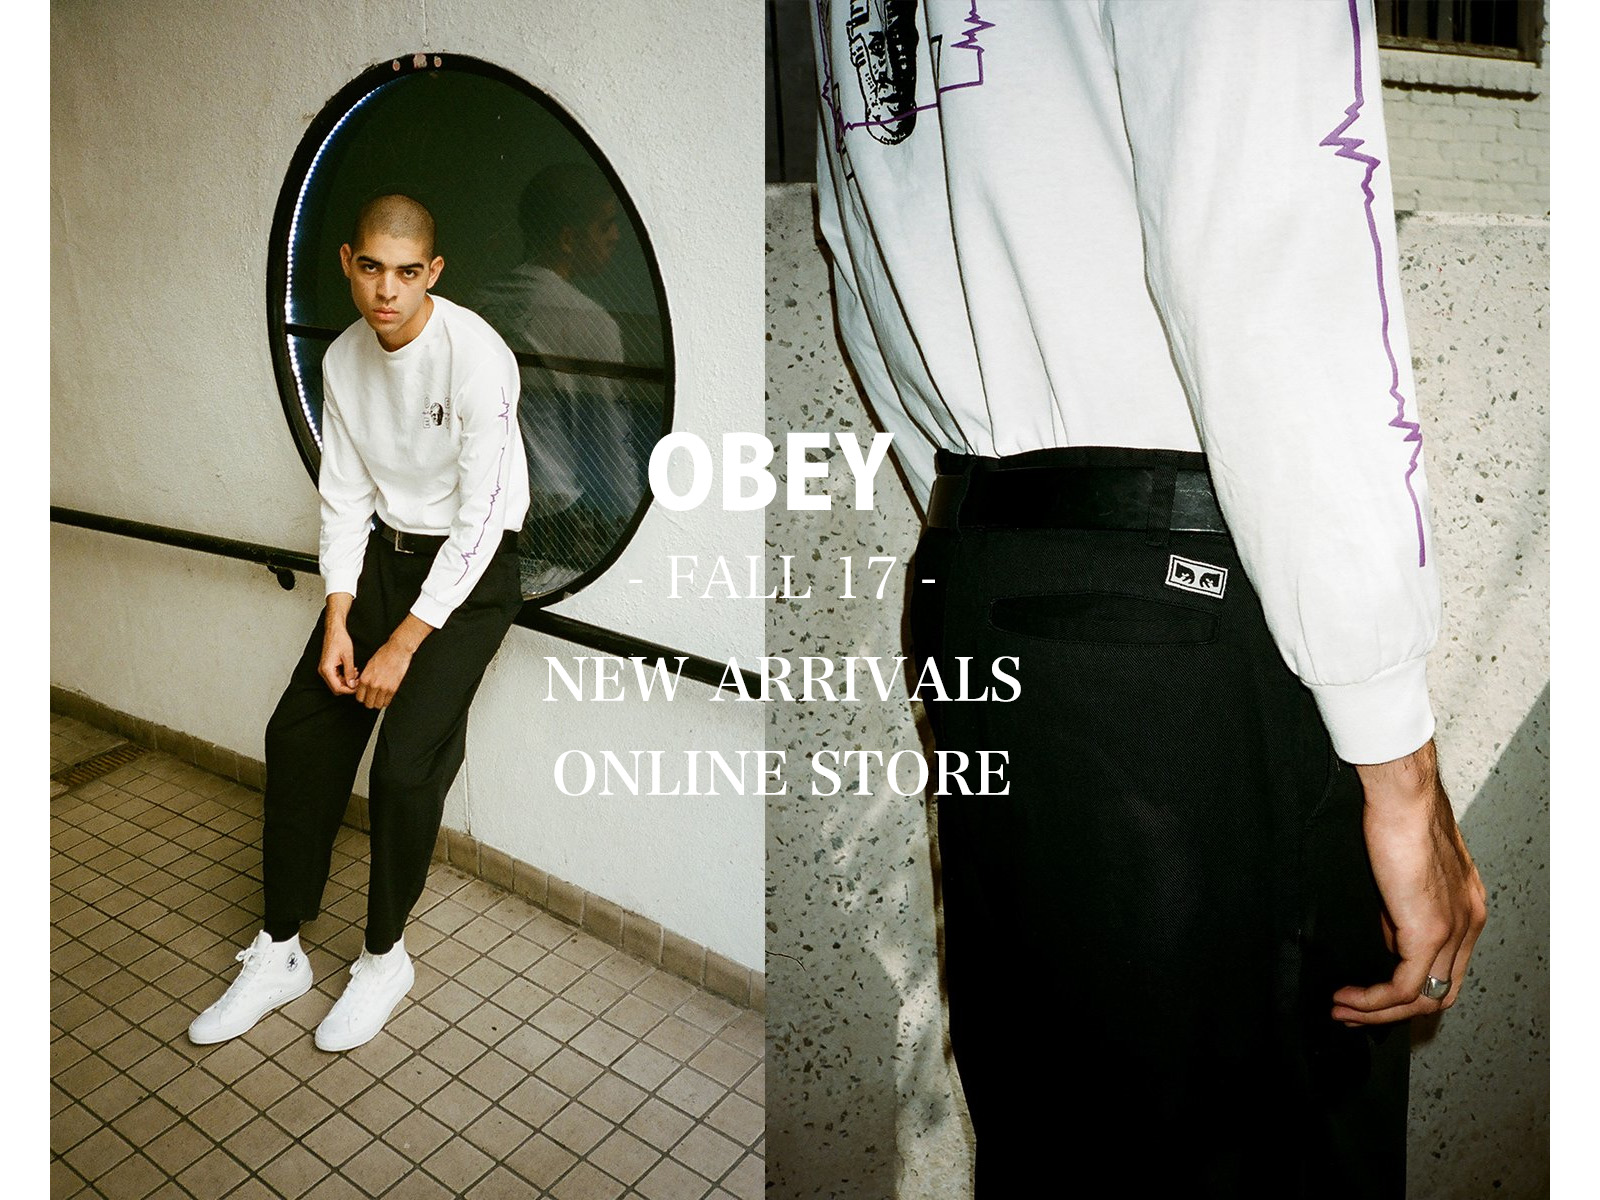 OBEY FALL17 New Arrivals Online Store